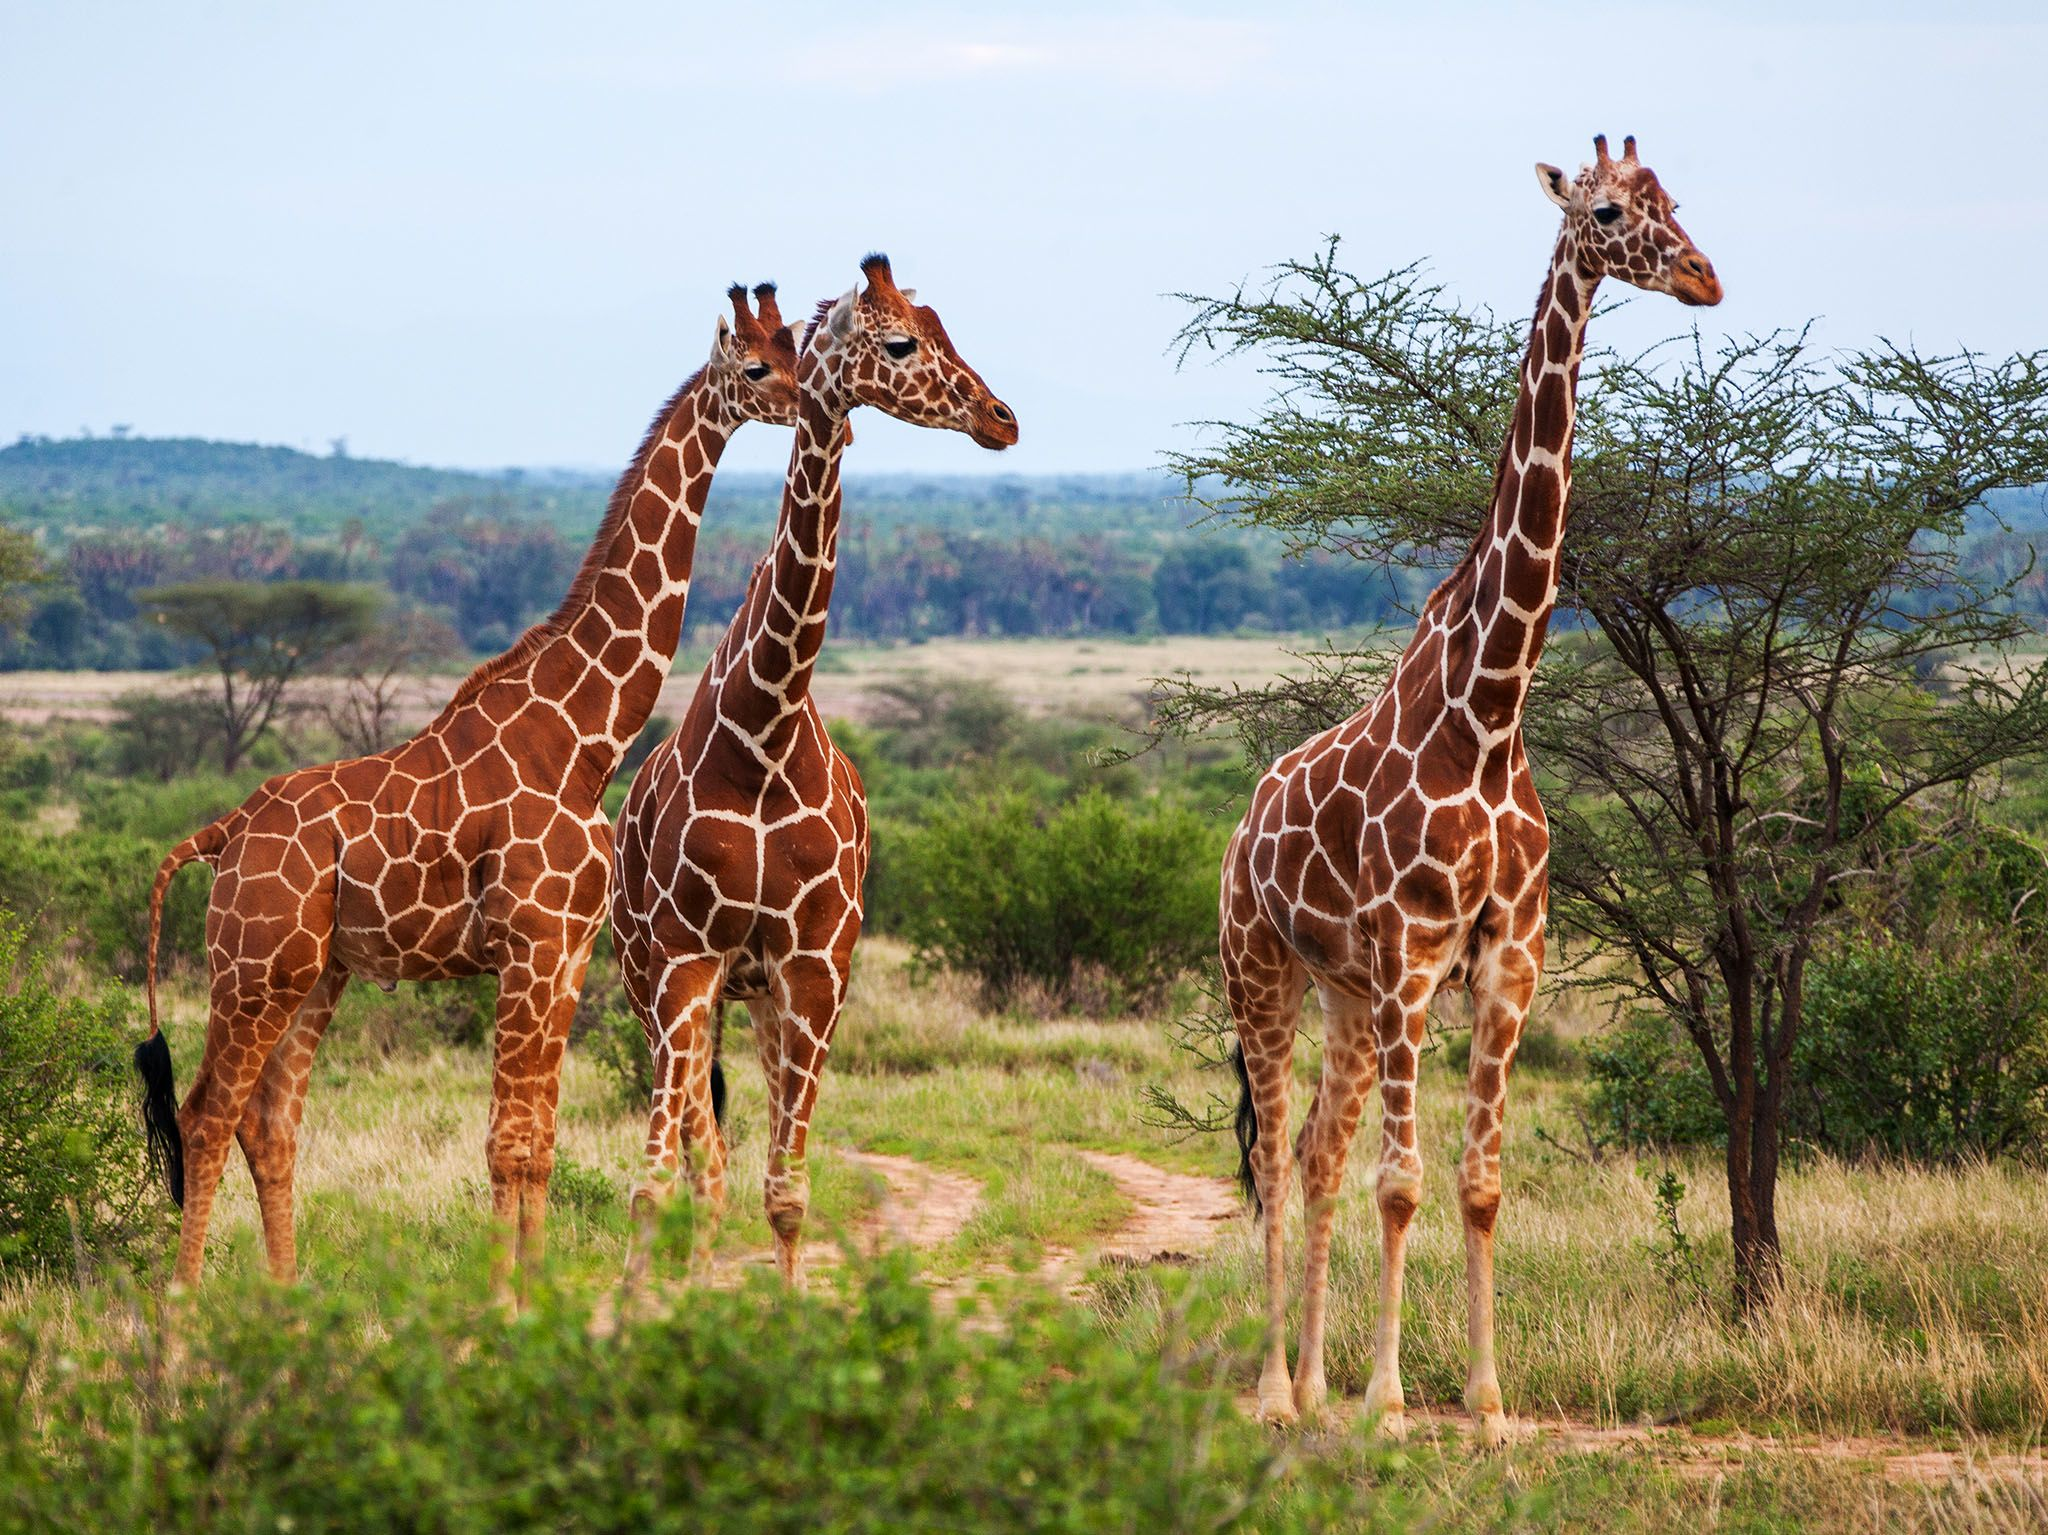 Kenya, Africa:  Small herd of giraffes in Kenya. This image is from Survive The Wild. [Photo of the day - 六月 2017]